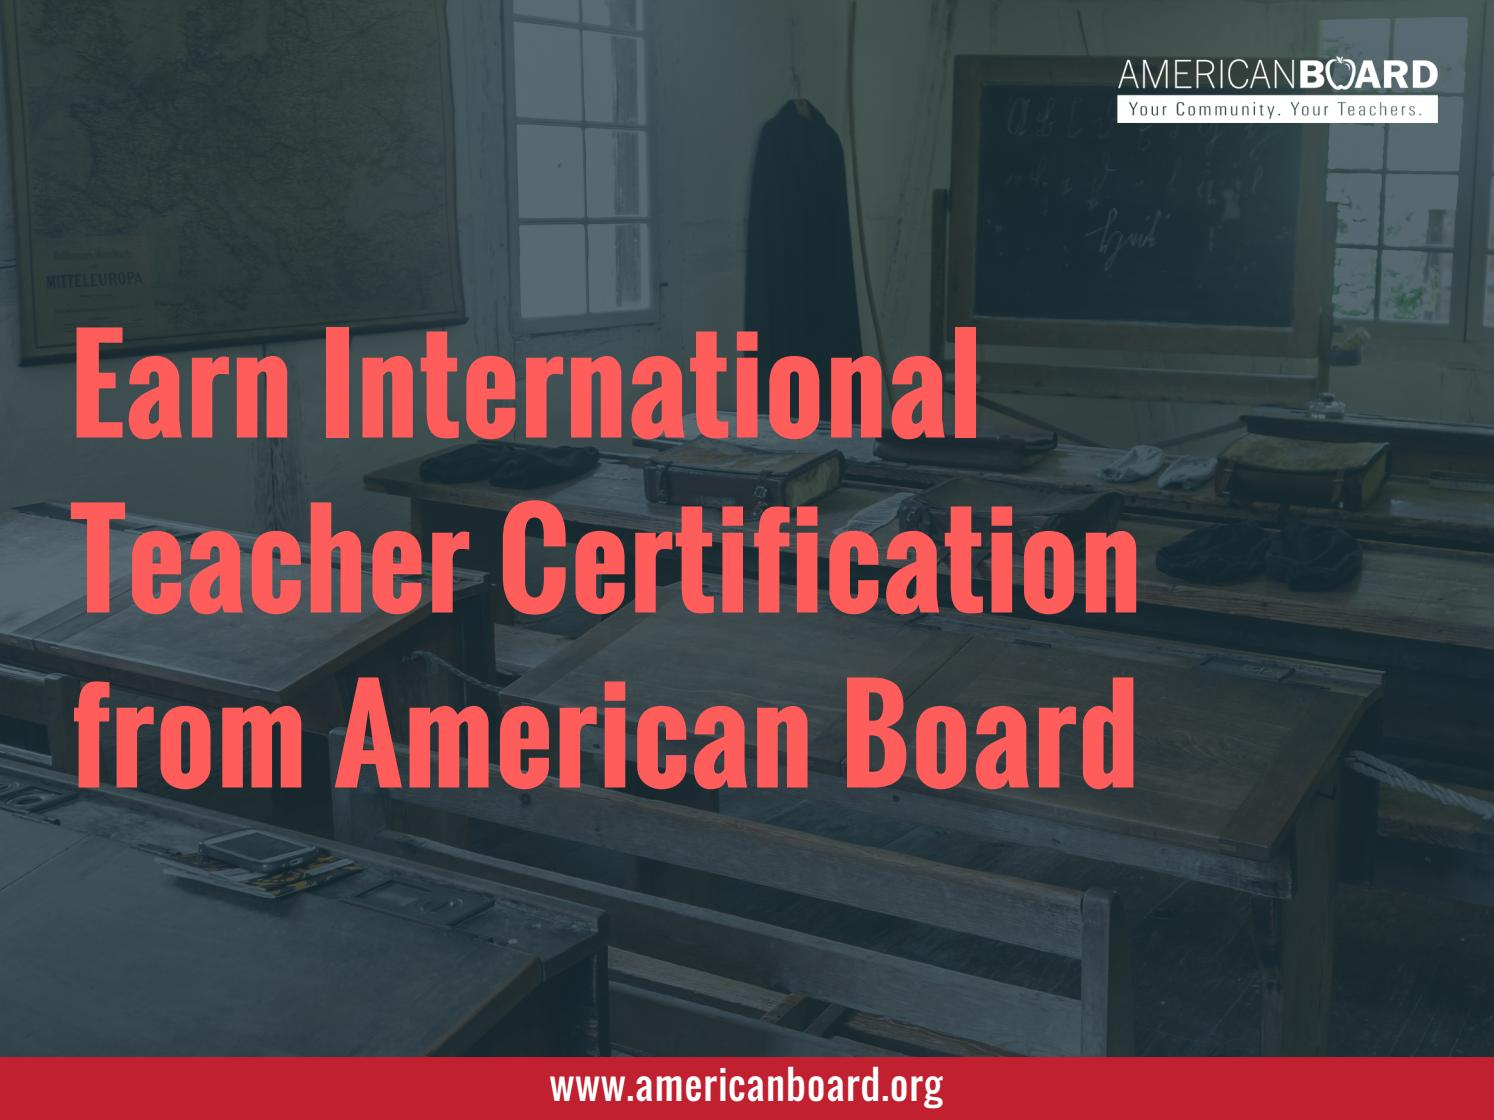 American board teacher certification